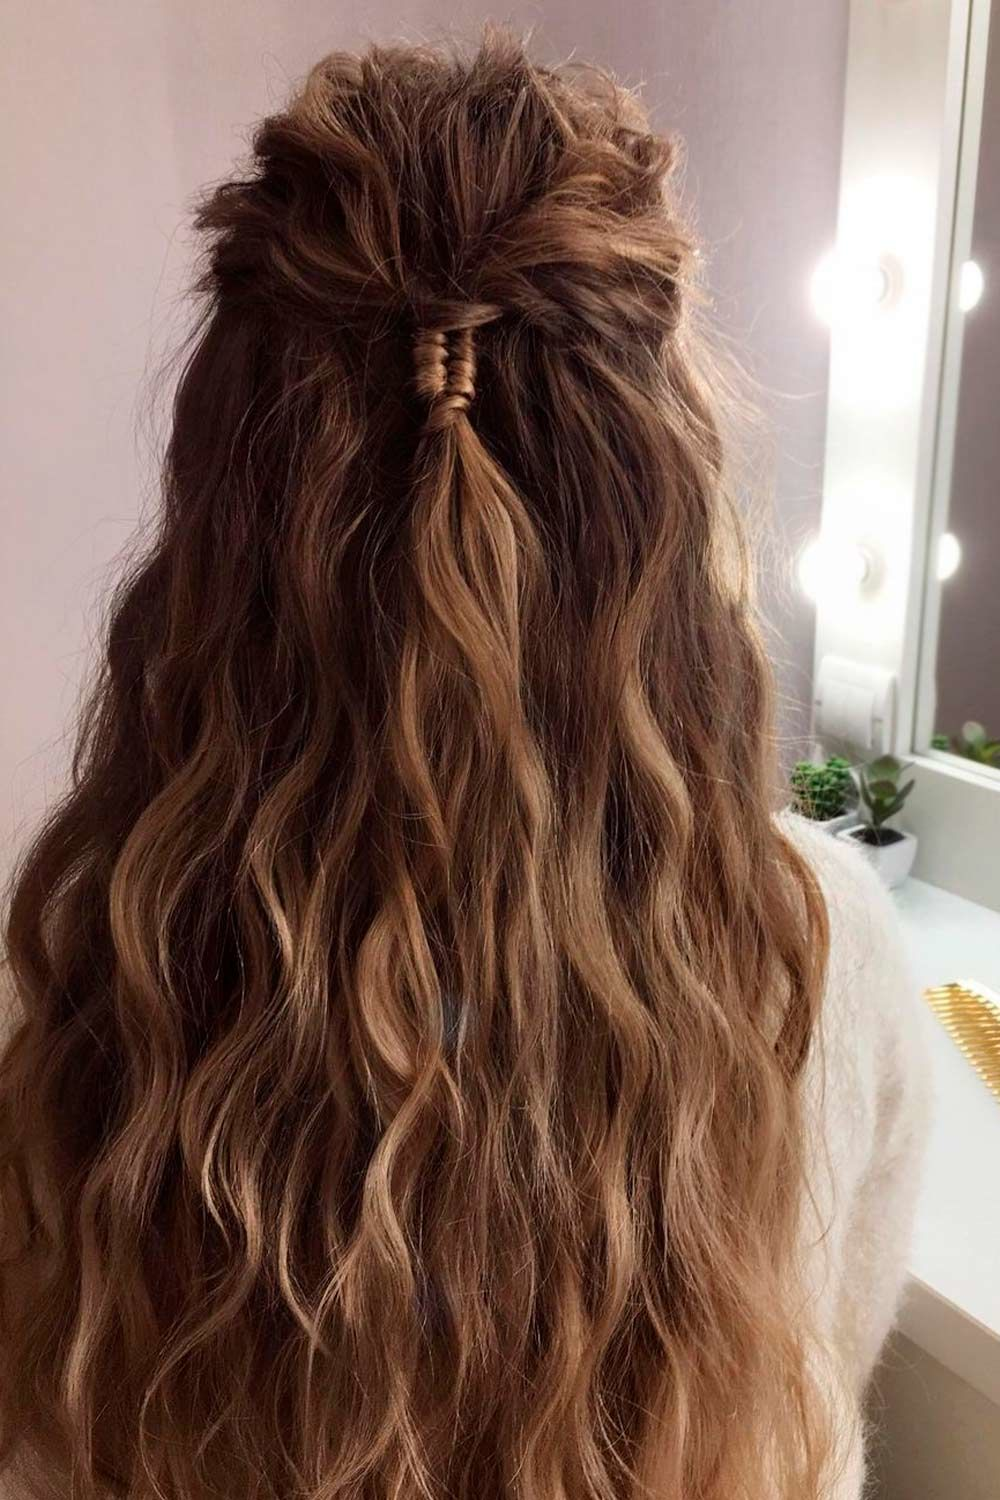 Inspiring and Simple Half-Up Bun Hairstyles For Long Hair